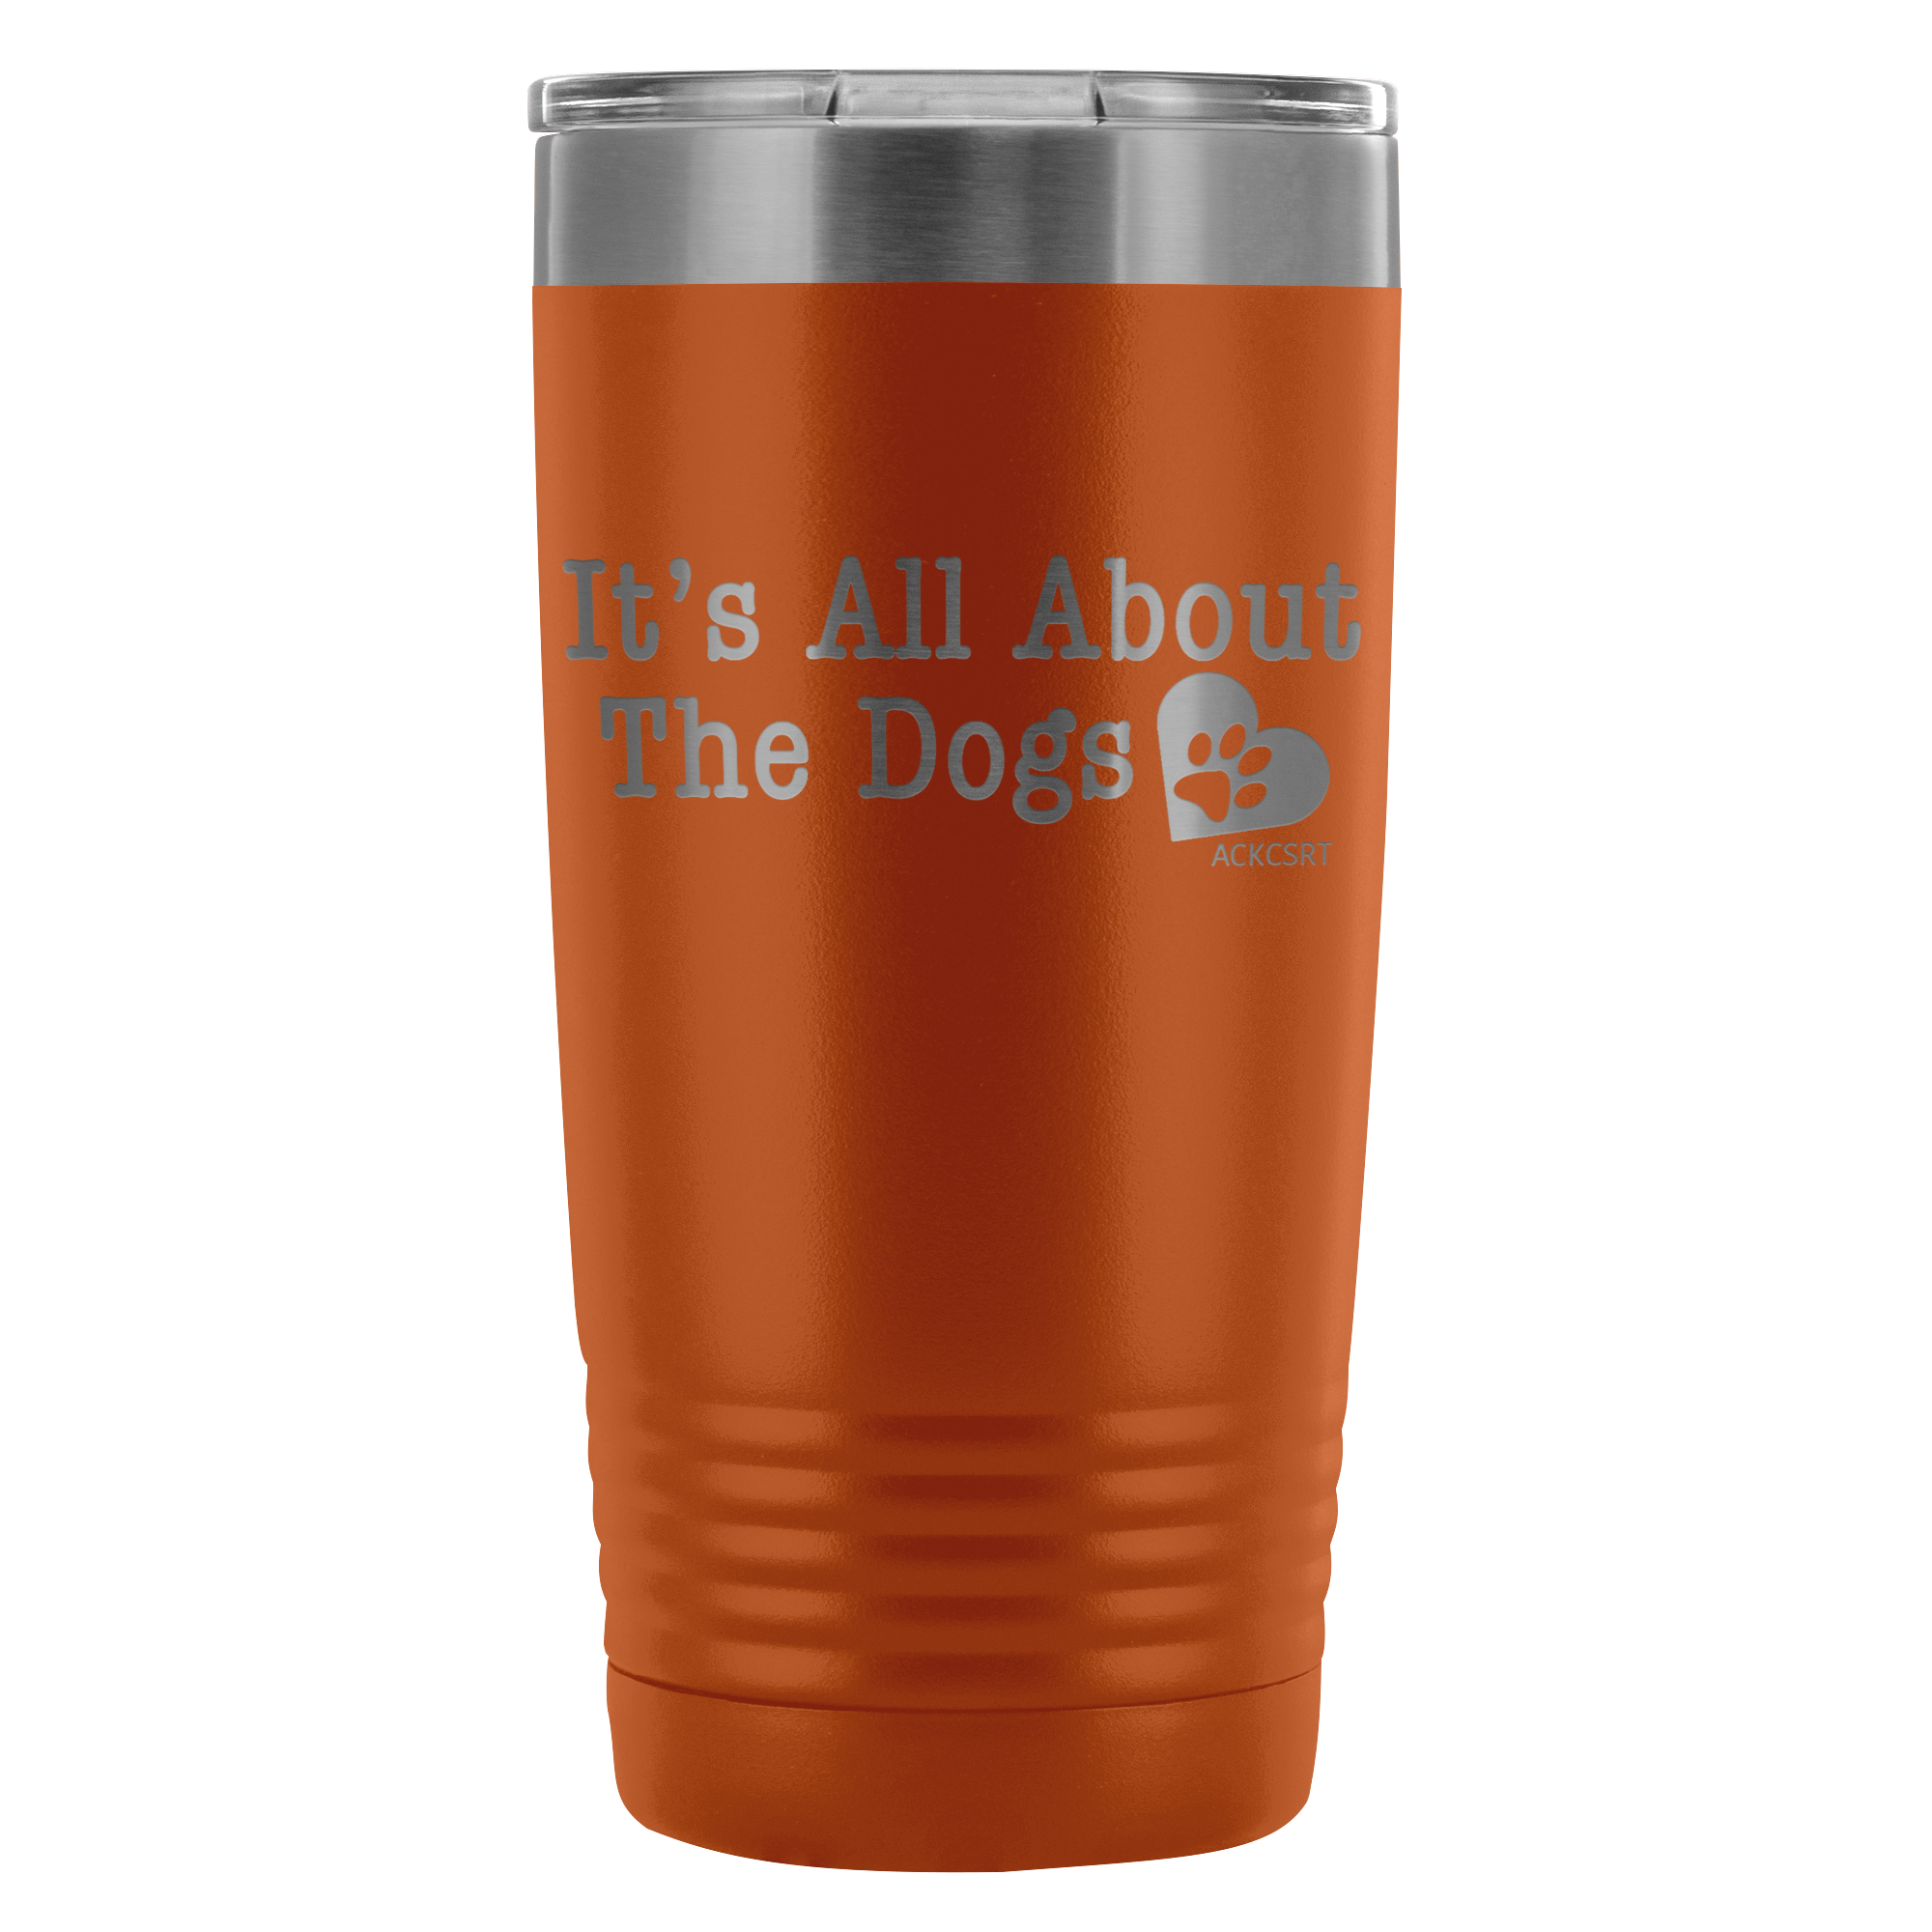 It's All About The Dogs - 20 oz. Tumbler